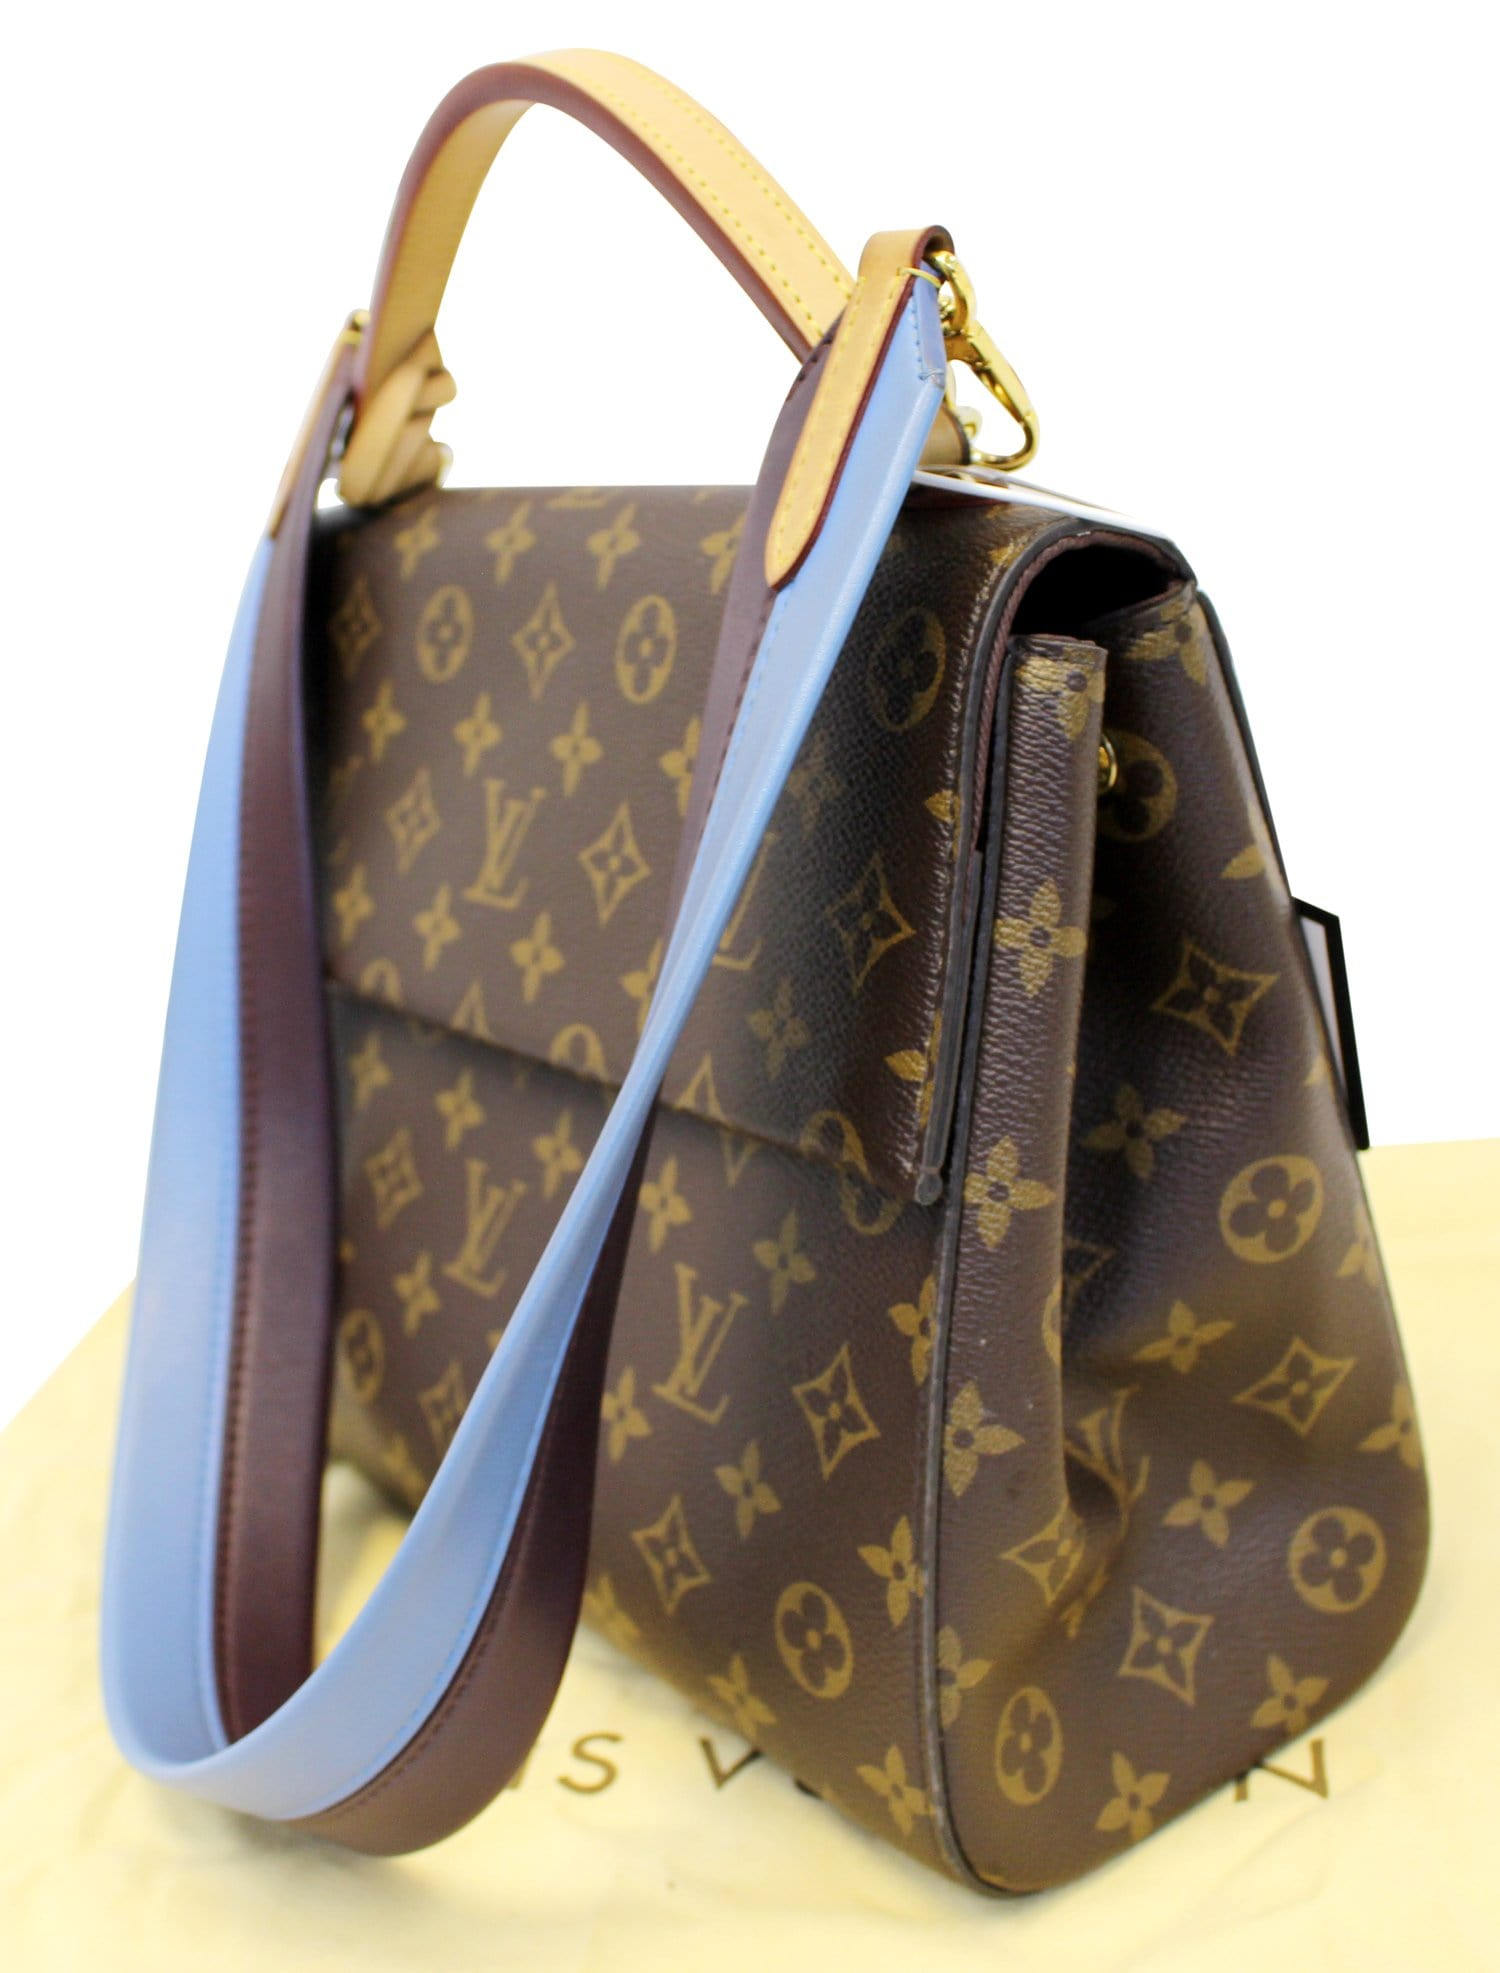 8ec1feccea42 LOUIS VUITTON Monogram Canvas Cluny MM Shoulder Bag TT2066